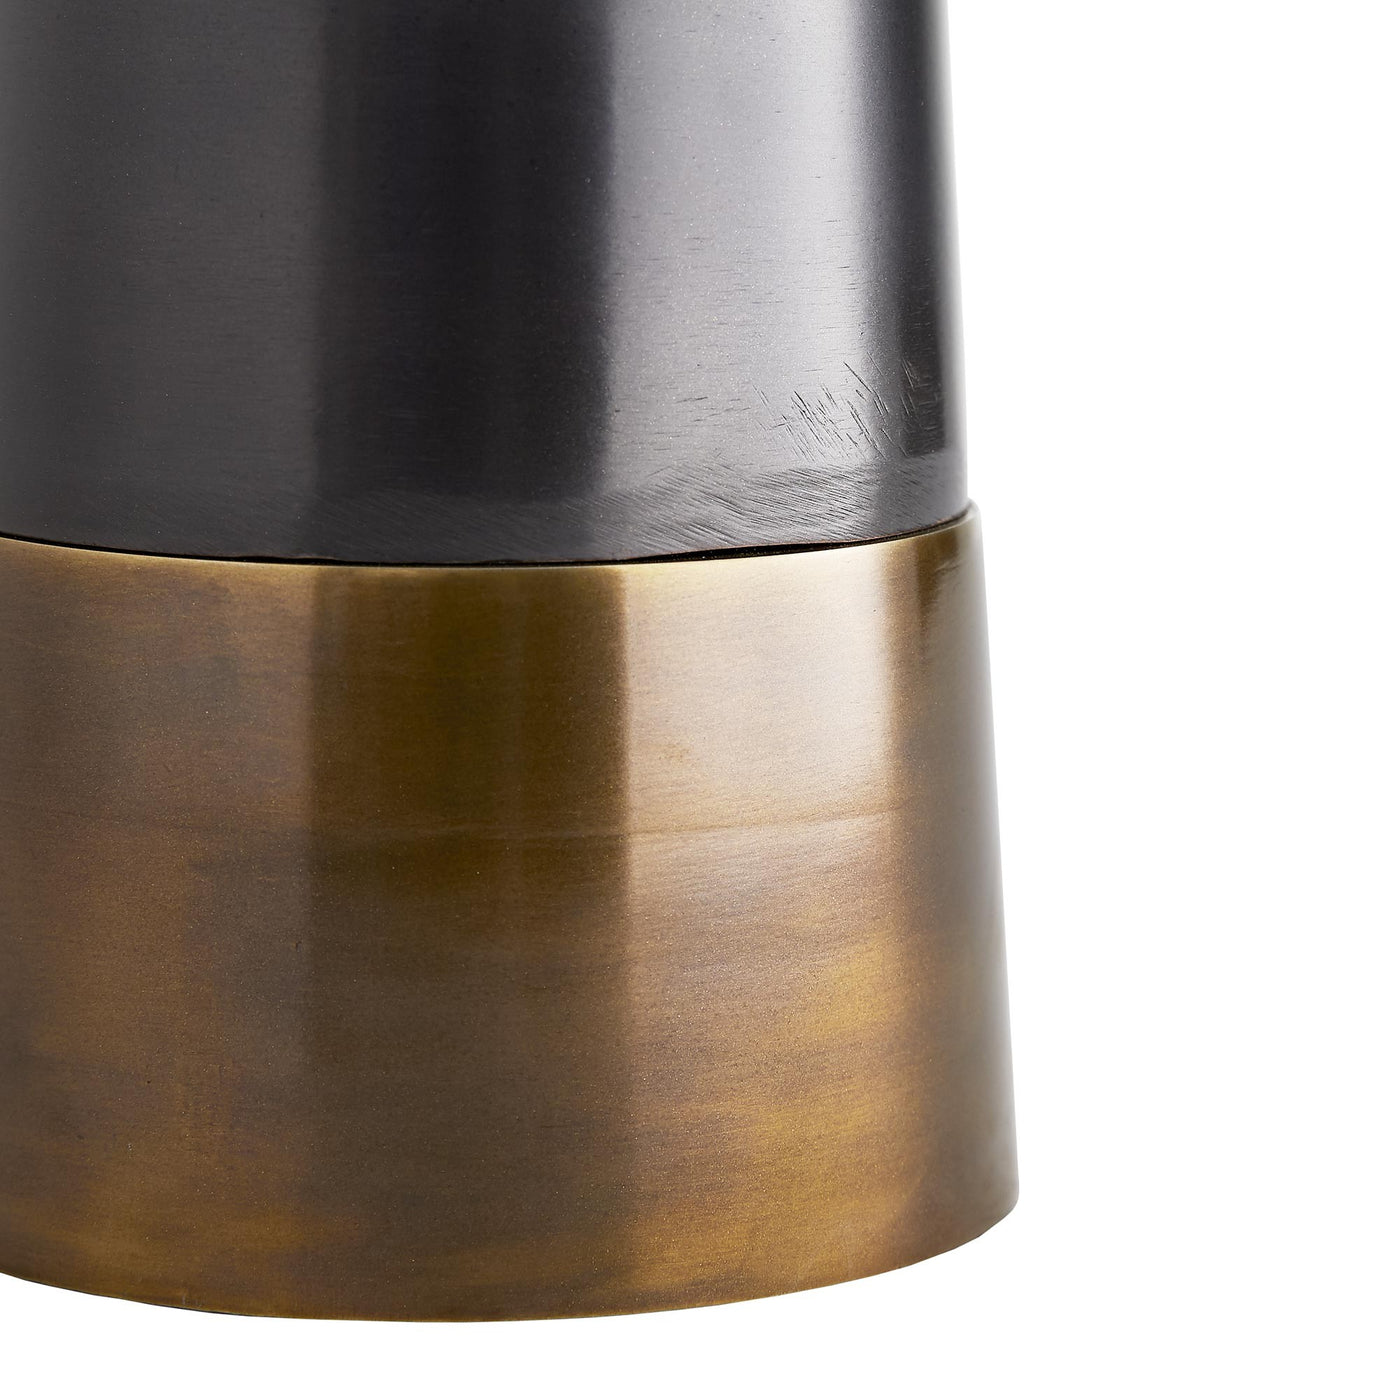 arteriors home Pablo lamp base with brass band